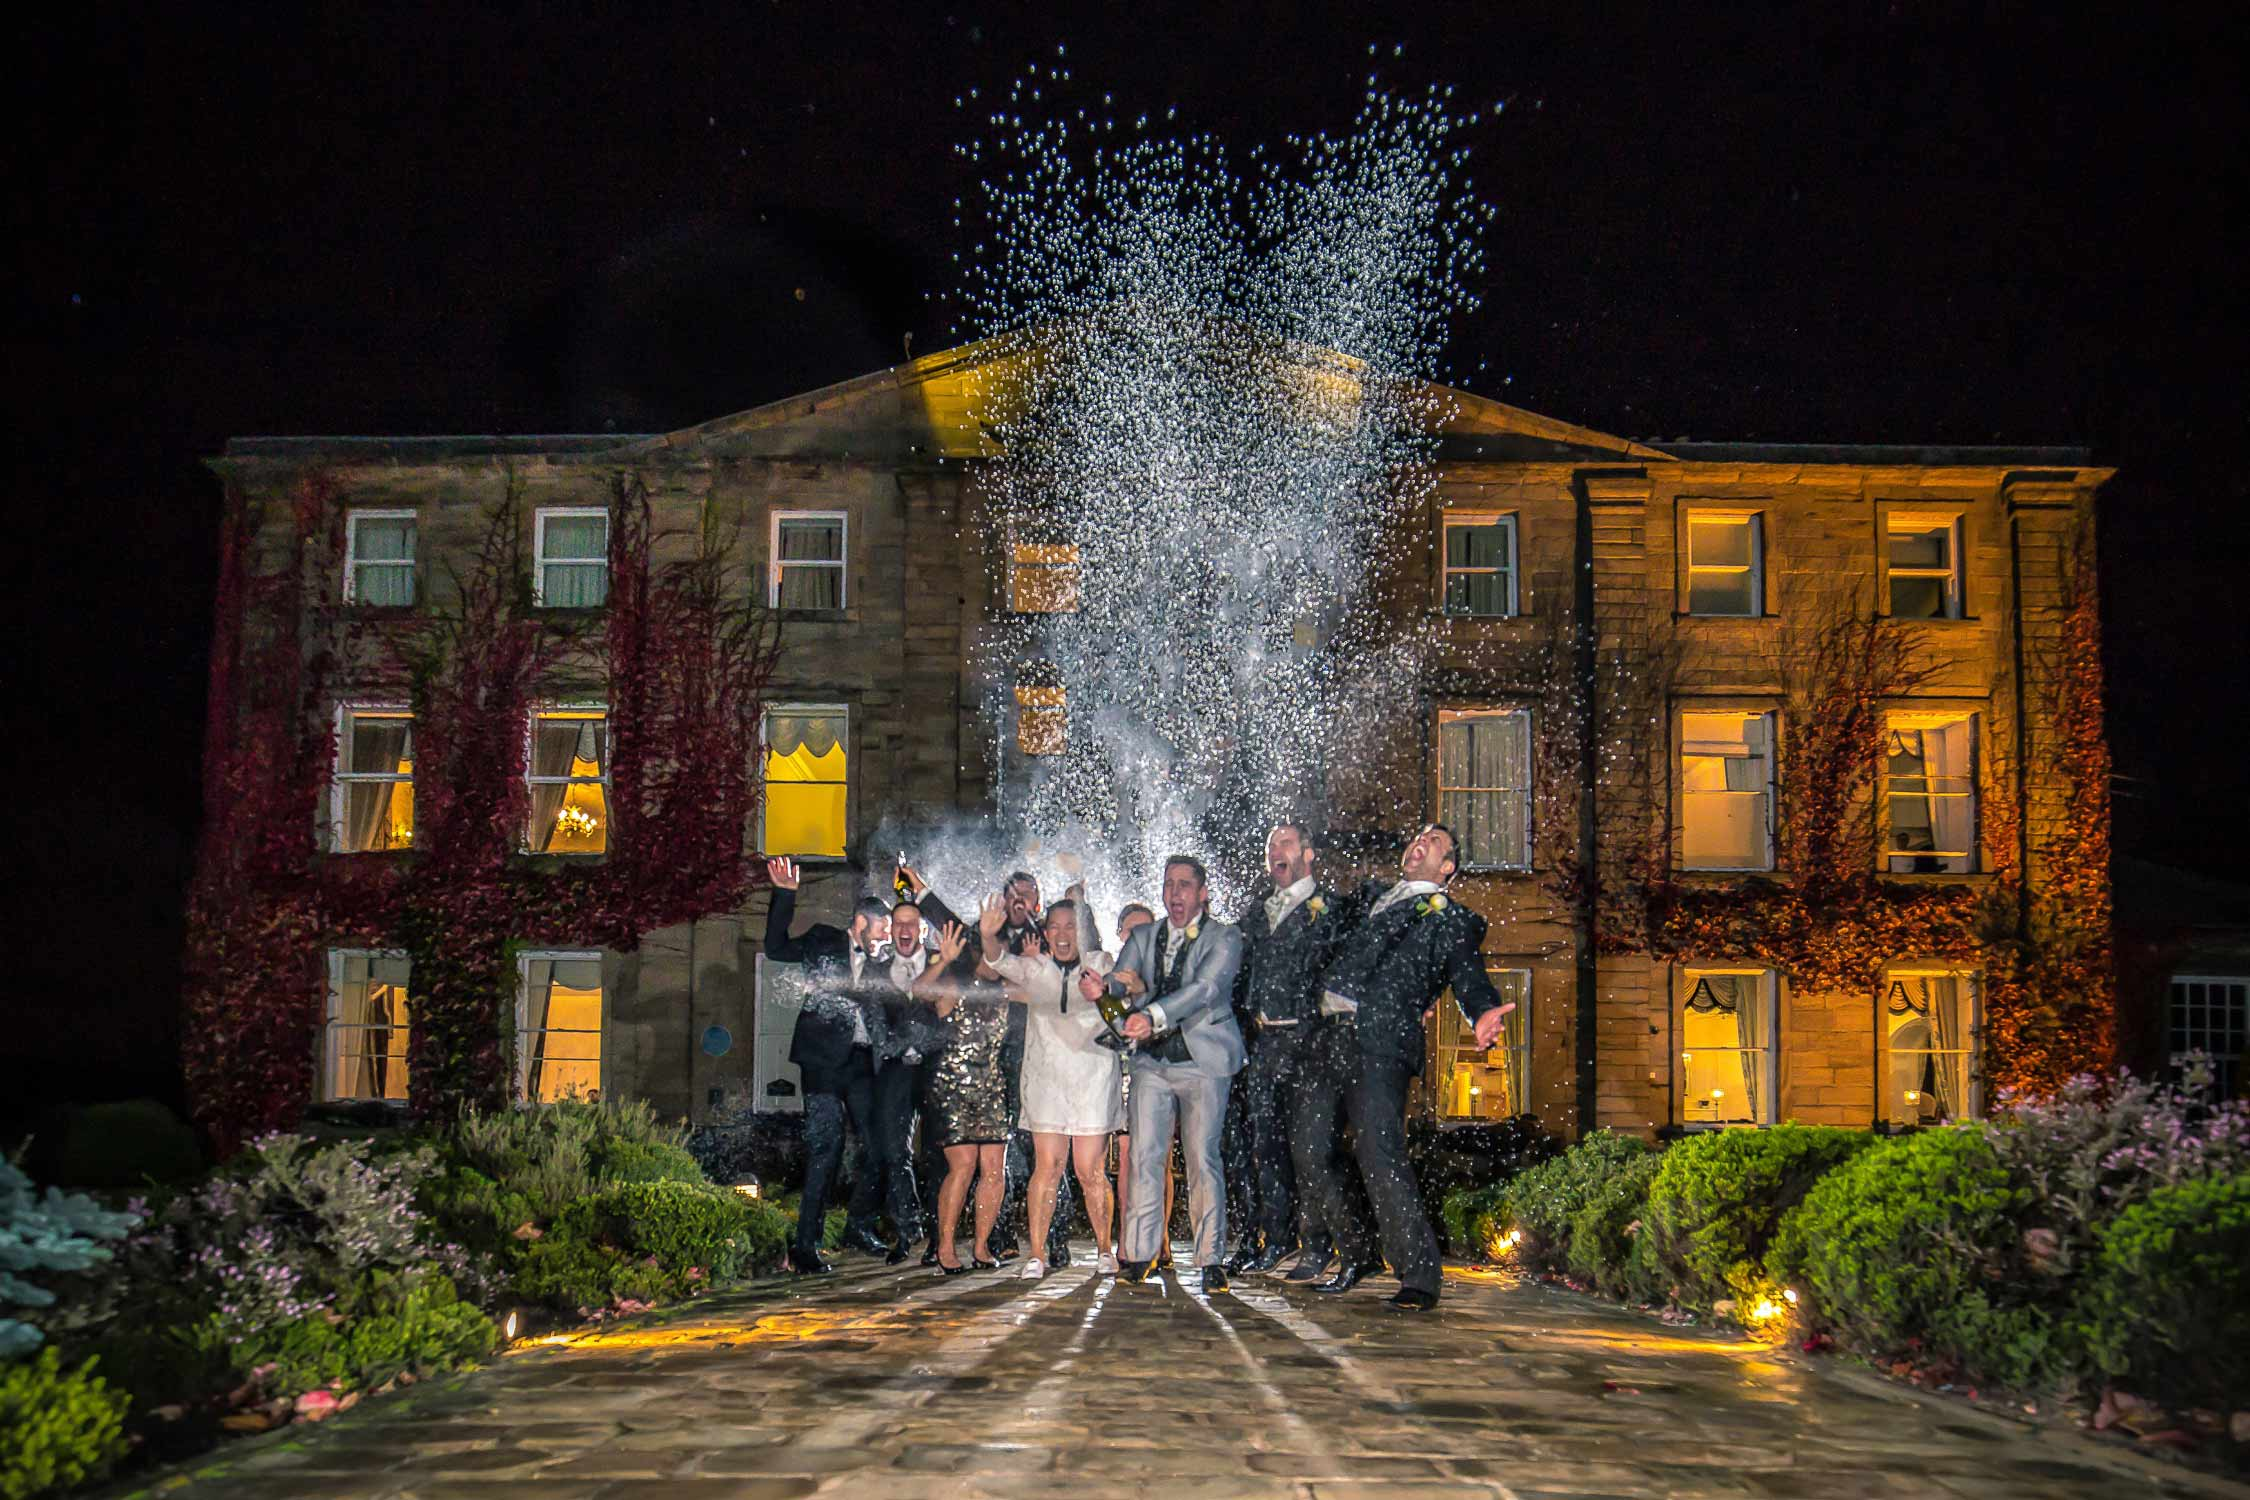 Waterton park Wedding photography by Ben Cumming - Yorkshire wedding photographer